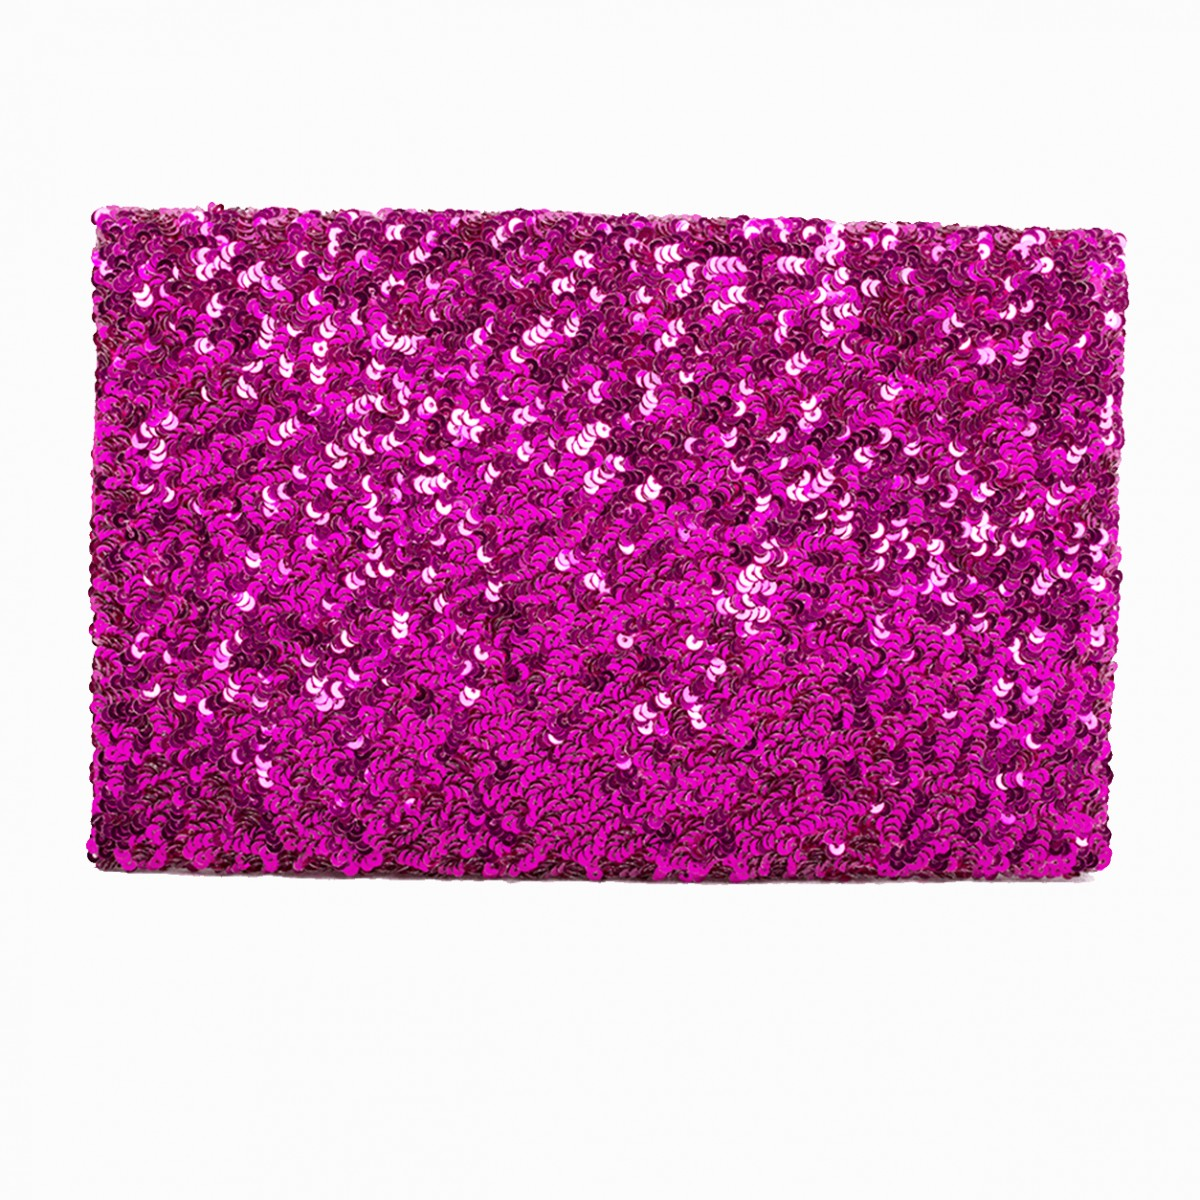 Sequin Clutch Bag - Fuchsia